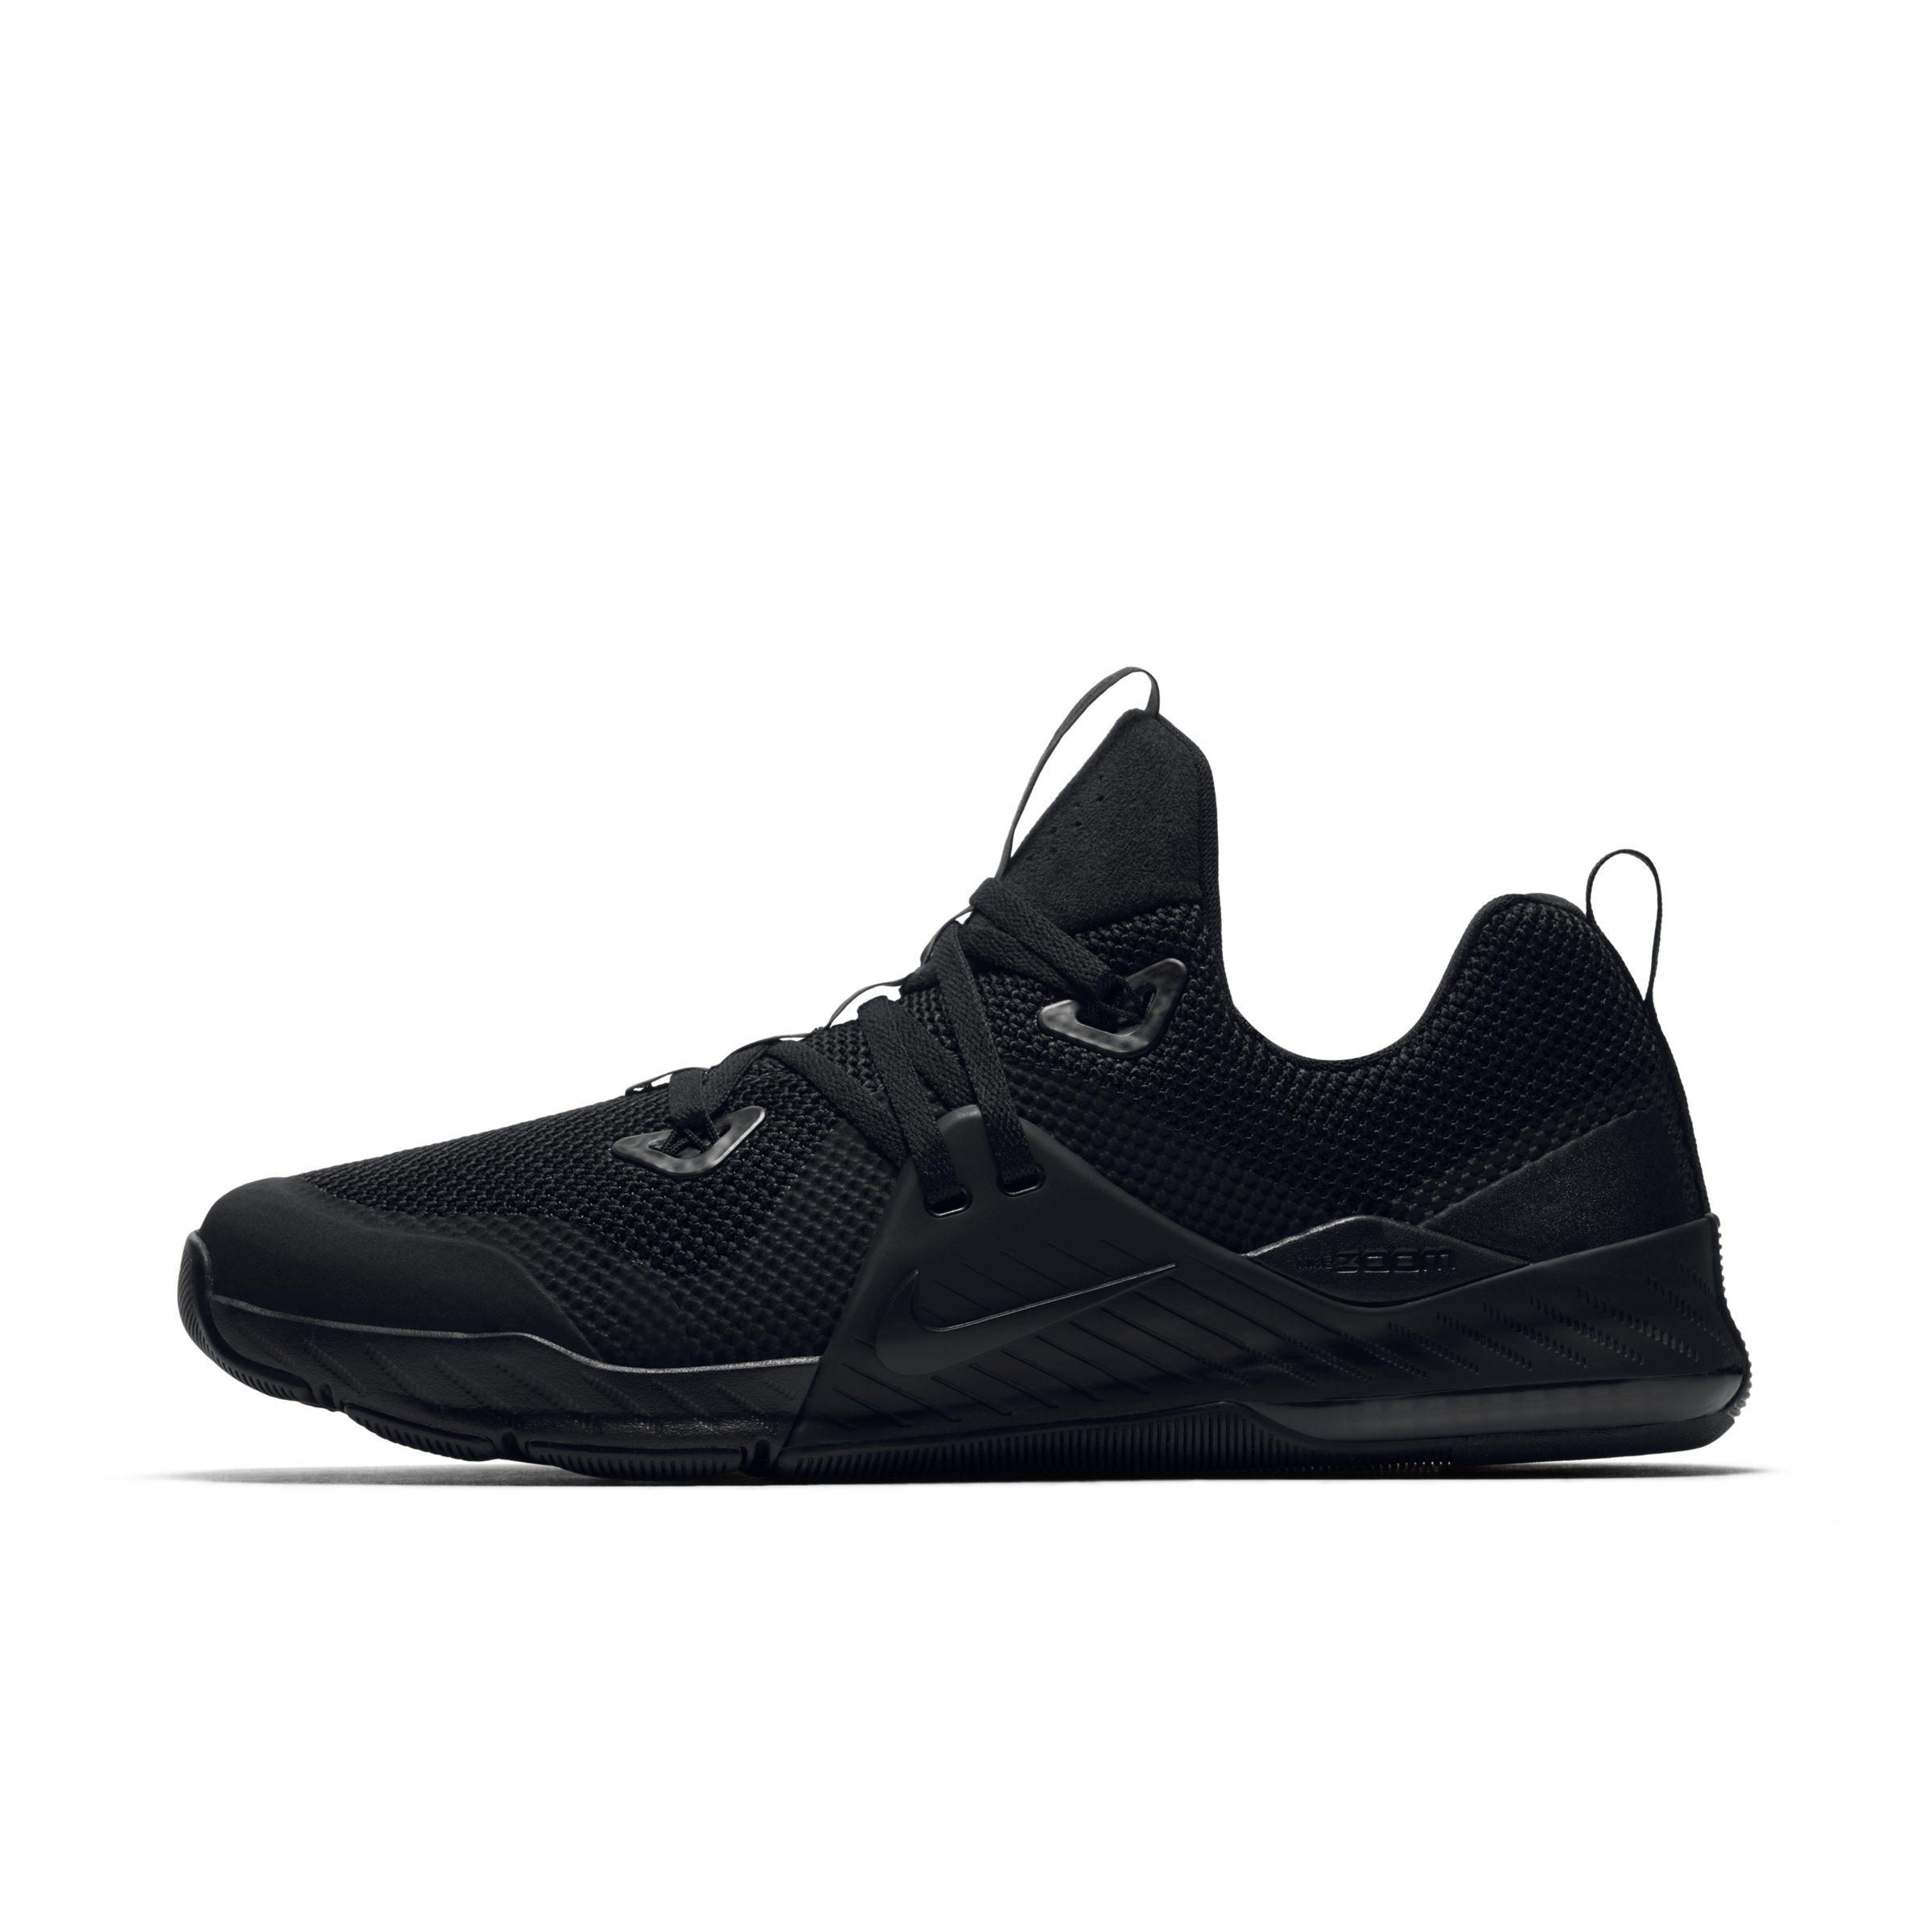 eebfd33c030a Nike Zoom Train Command Gym boxing Shoe in Black for Men - Lyst